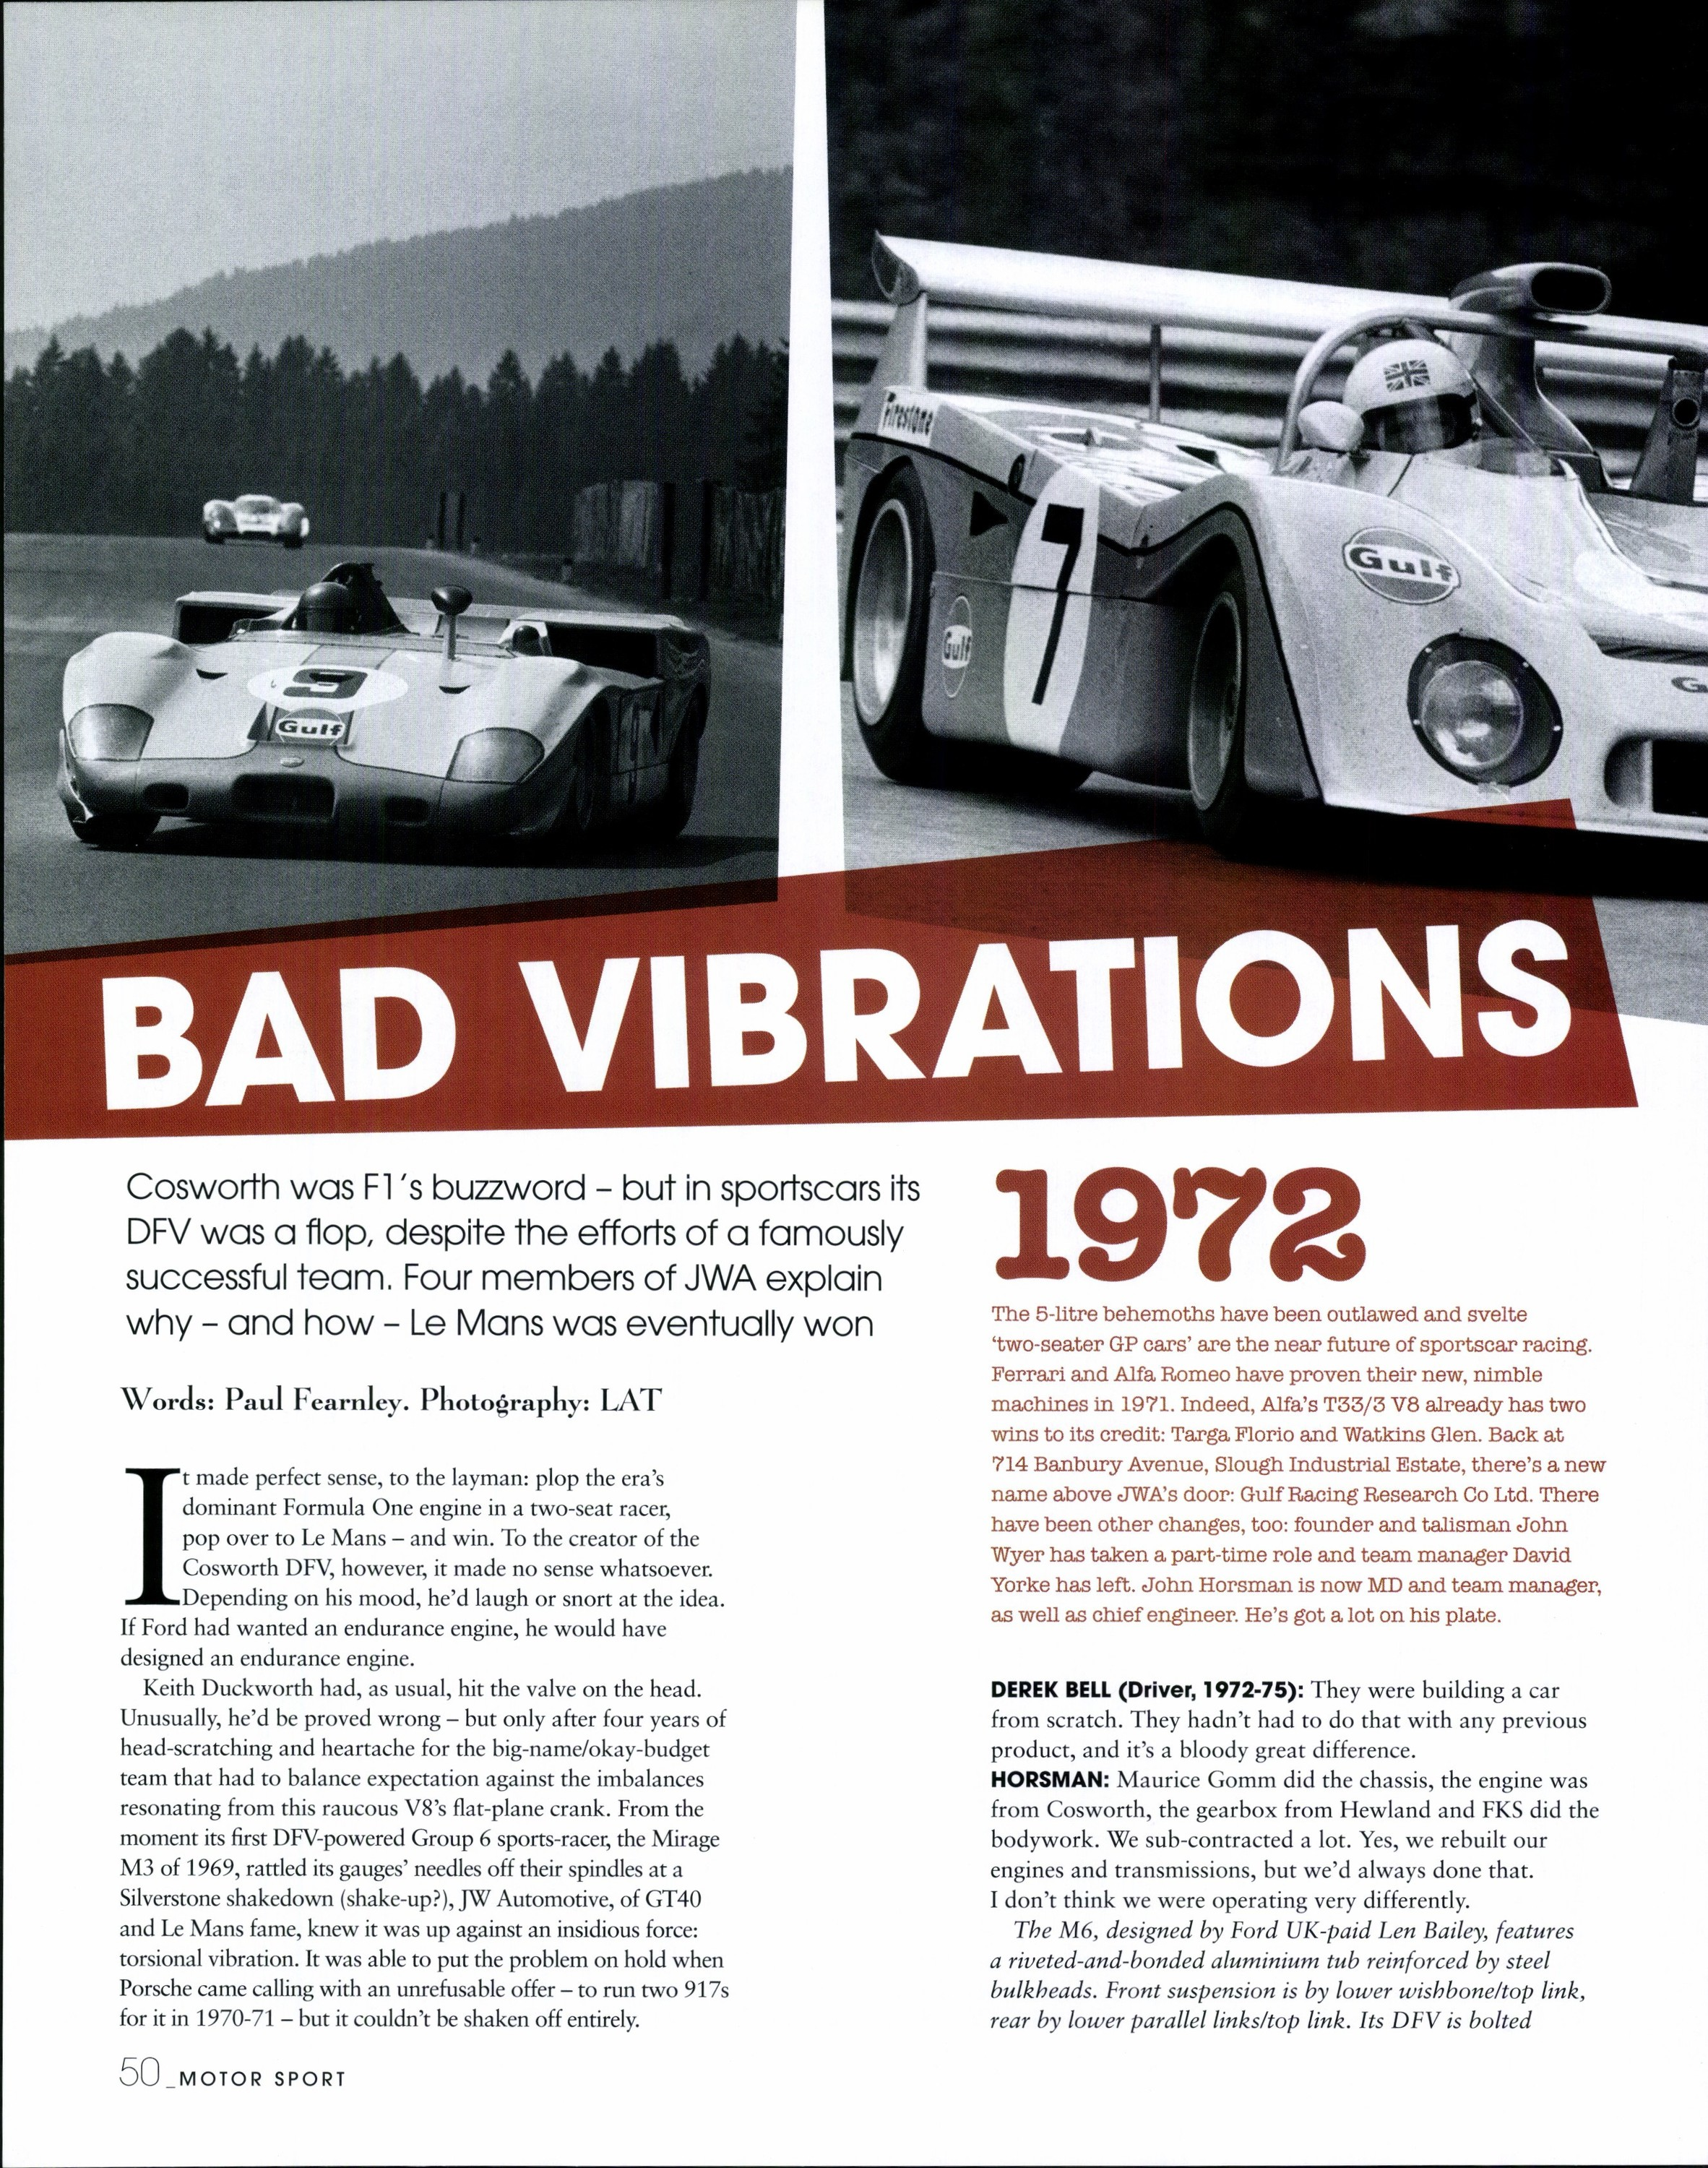 Bad vibrations | Motor Sport Magazine Archive